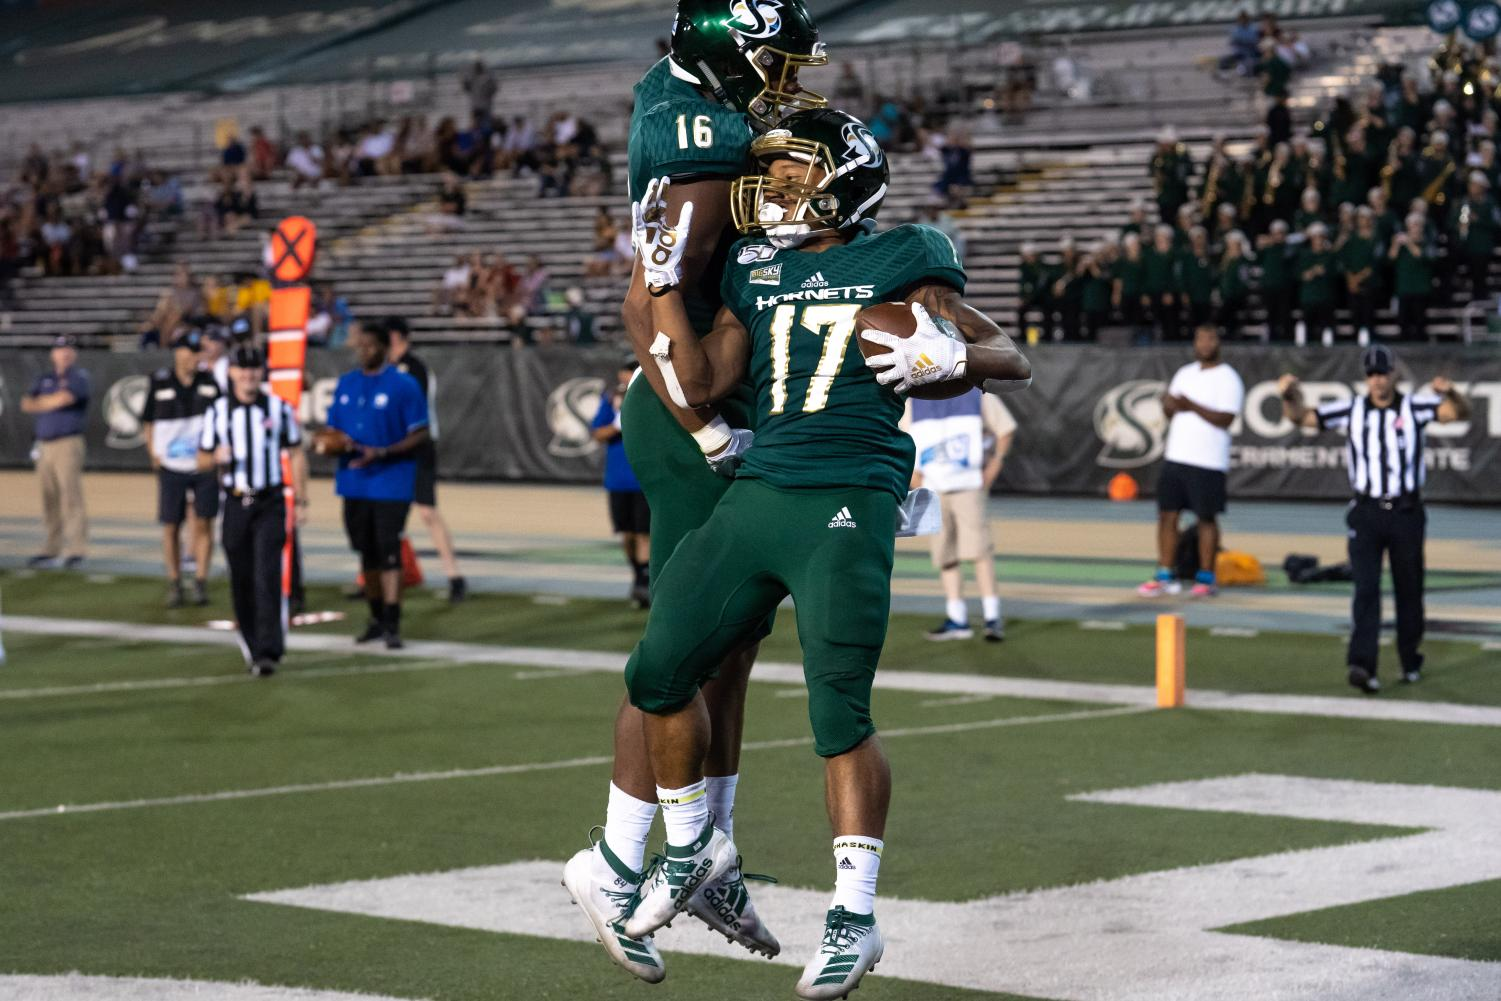 Sac State senior wide receiver Dewey Cotton, right, and freshman tight end Marshel Martin, left, celebrate after Cotton scored a touchdown against Northern Colorado on Saturday, Sept. 14, at Hornet Stadium. Cotton had a total of 14 yards receiving and one touchdown against the Bears.